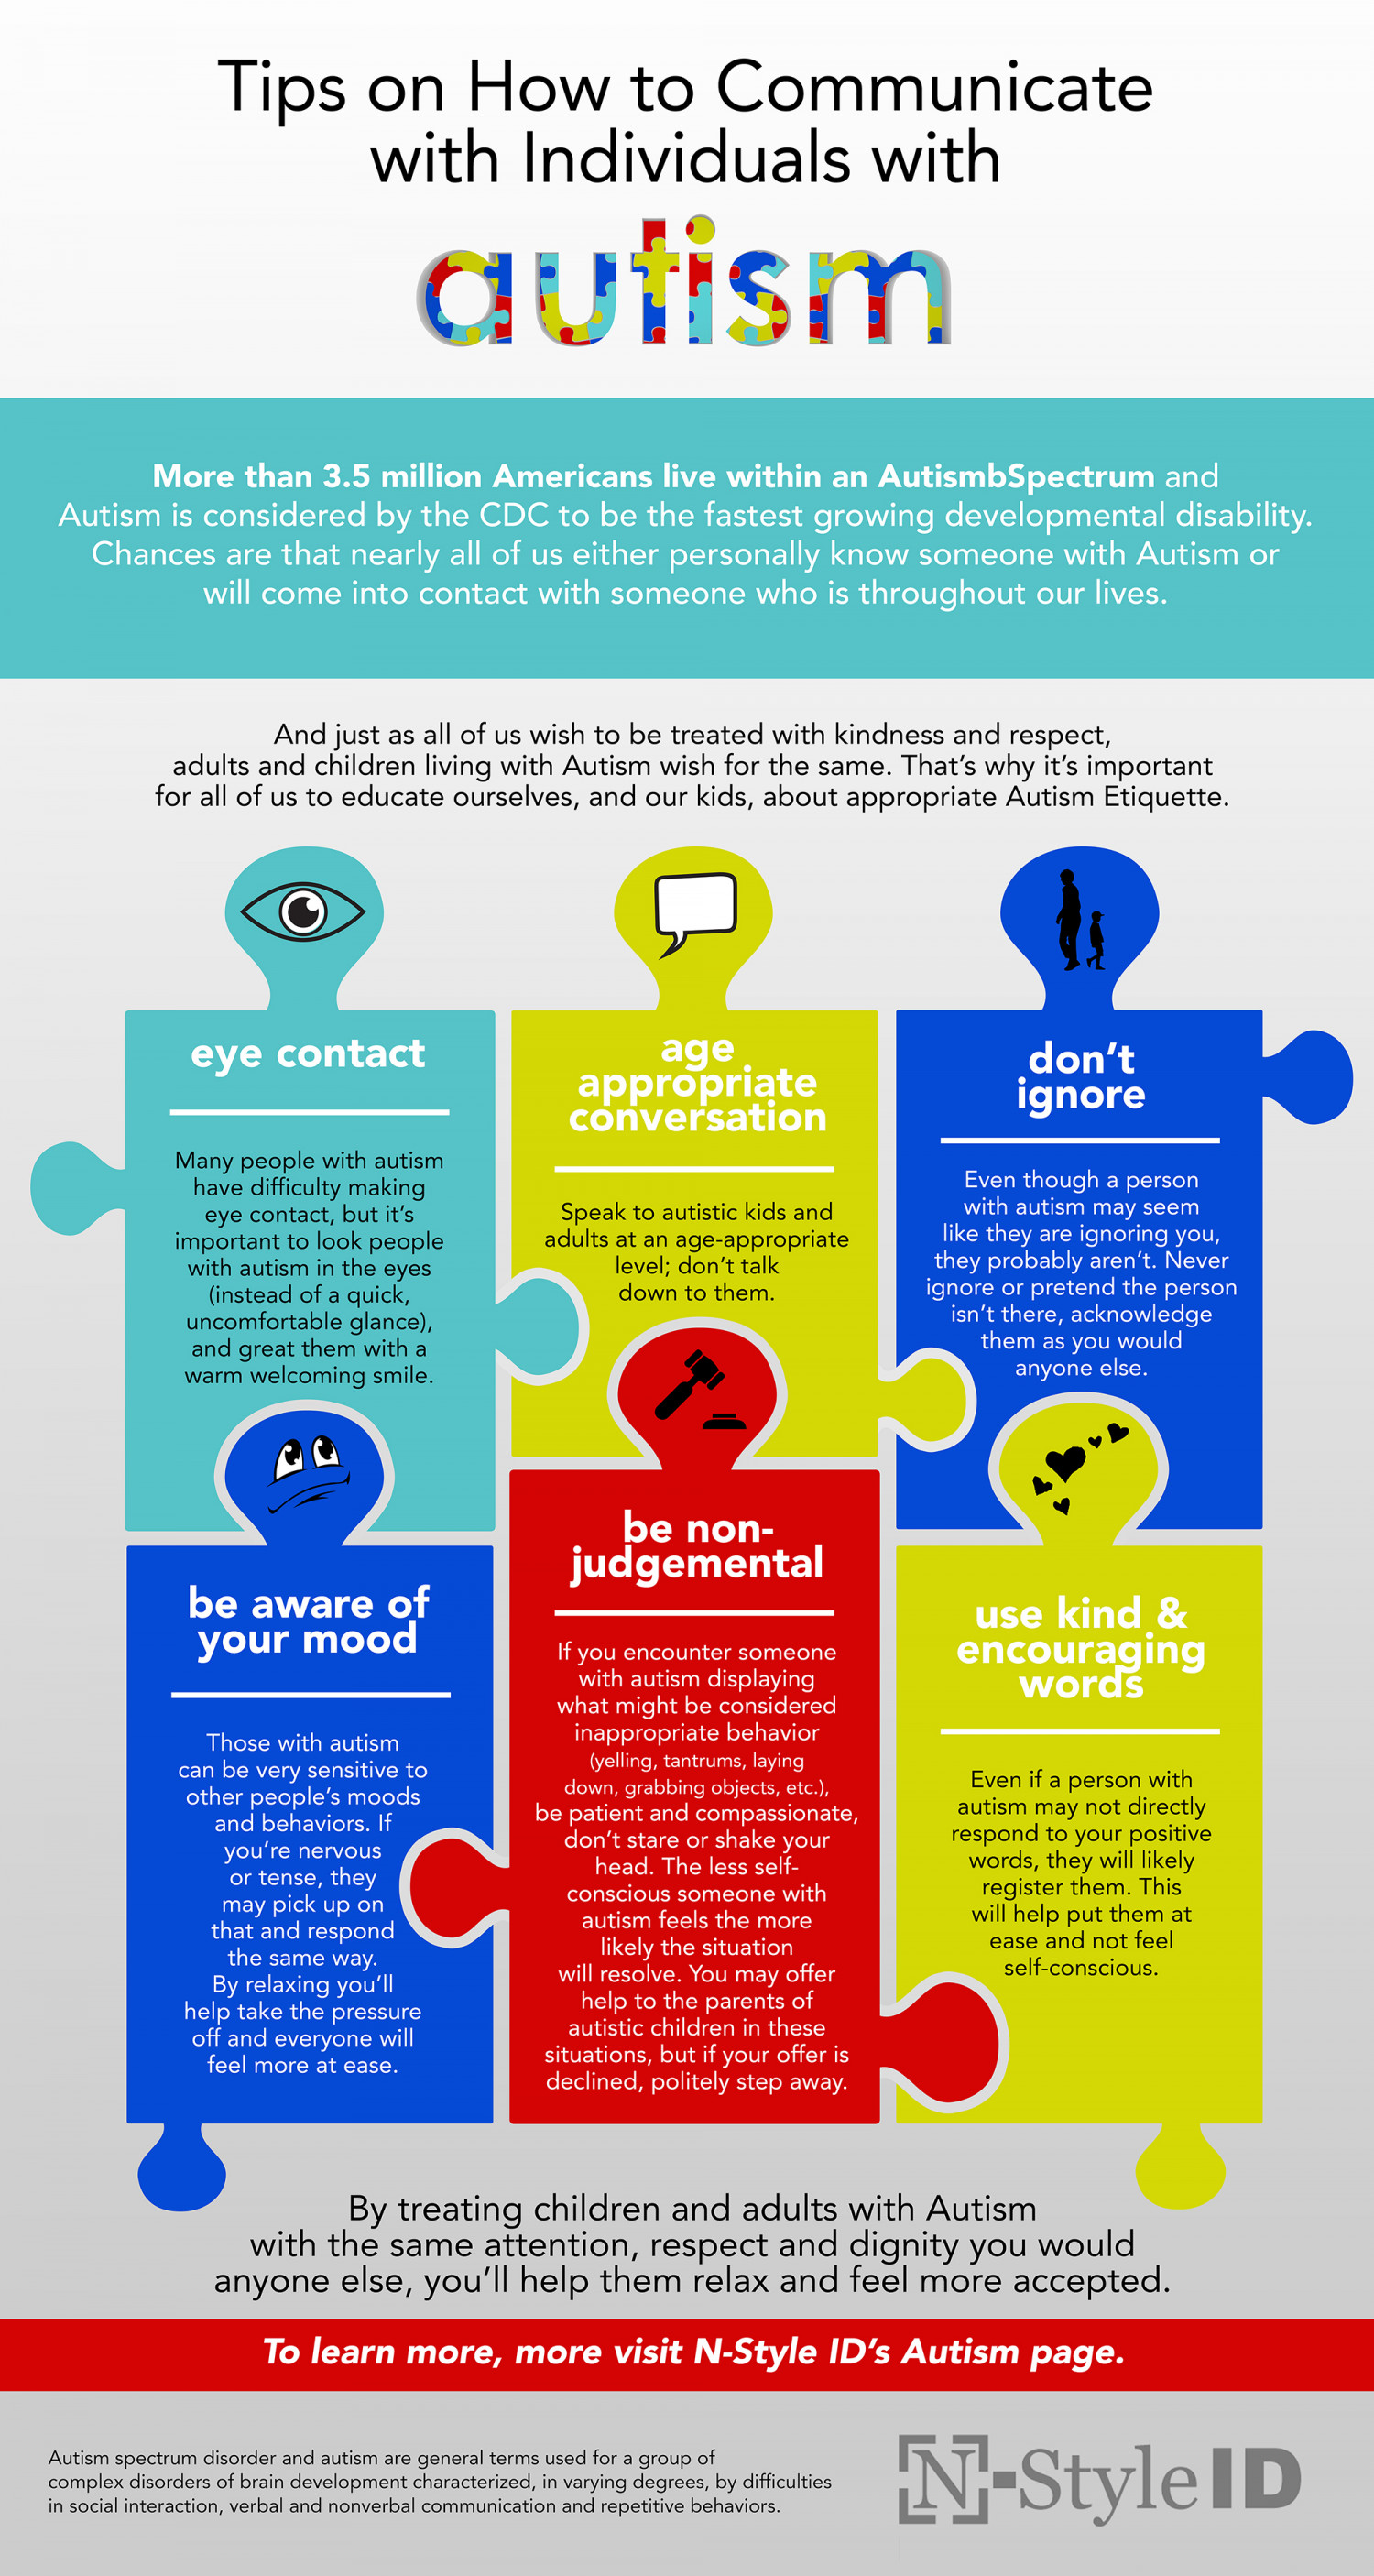 Tips on Communicating with Autistic Individuals Infographic